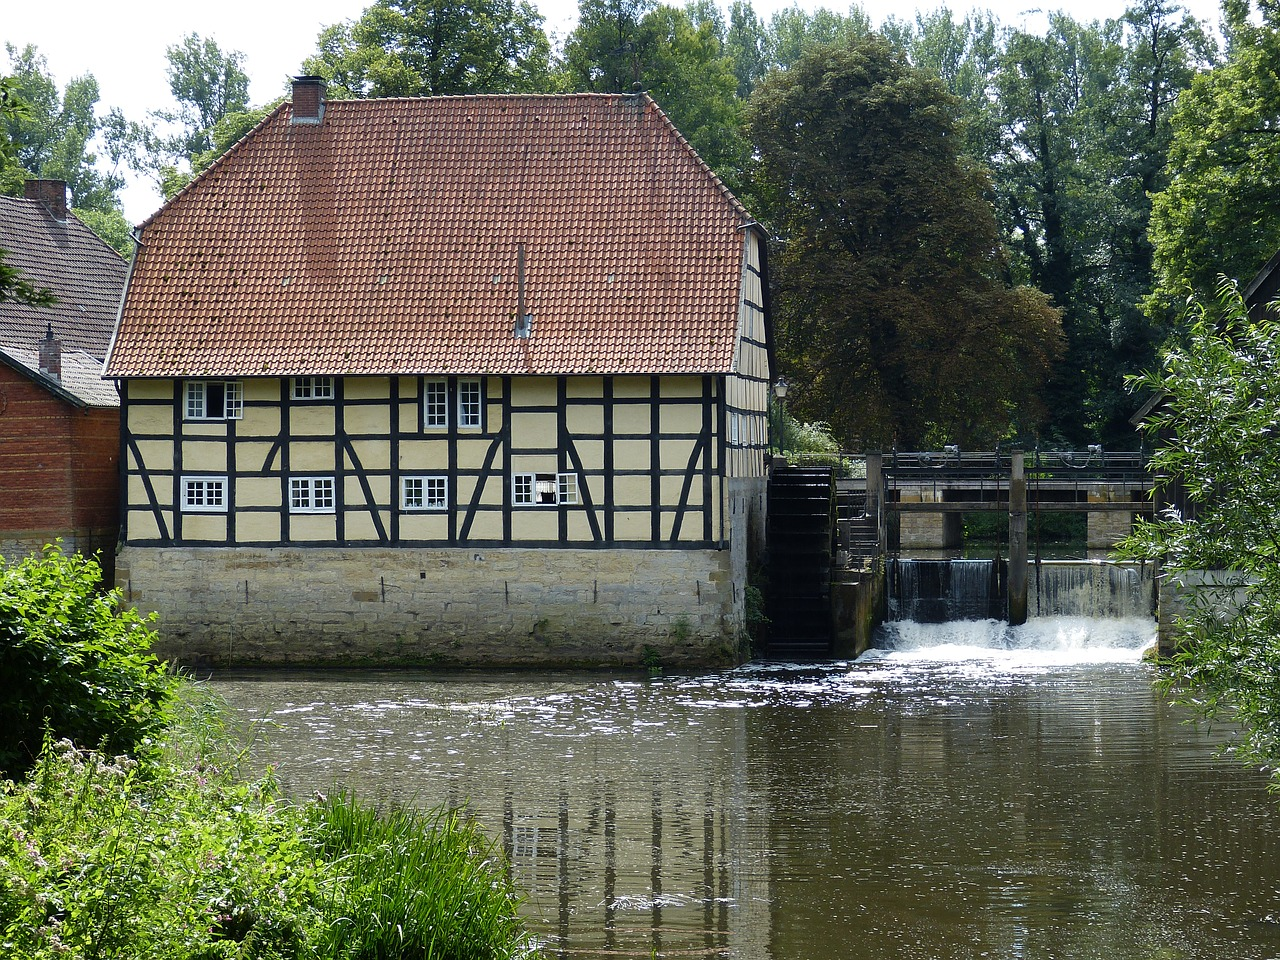 mill,water mill,waterwheel,mill wheel,water power,truss,energy,historically,weir,rheda,rheda-wiedenbrück,free pictures, free photos, free images, royalty free, free illustrations, public domain